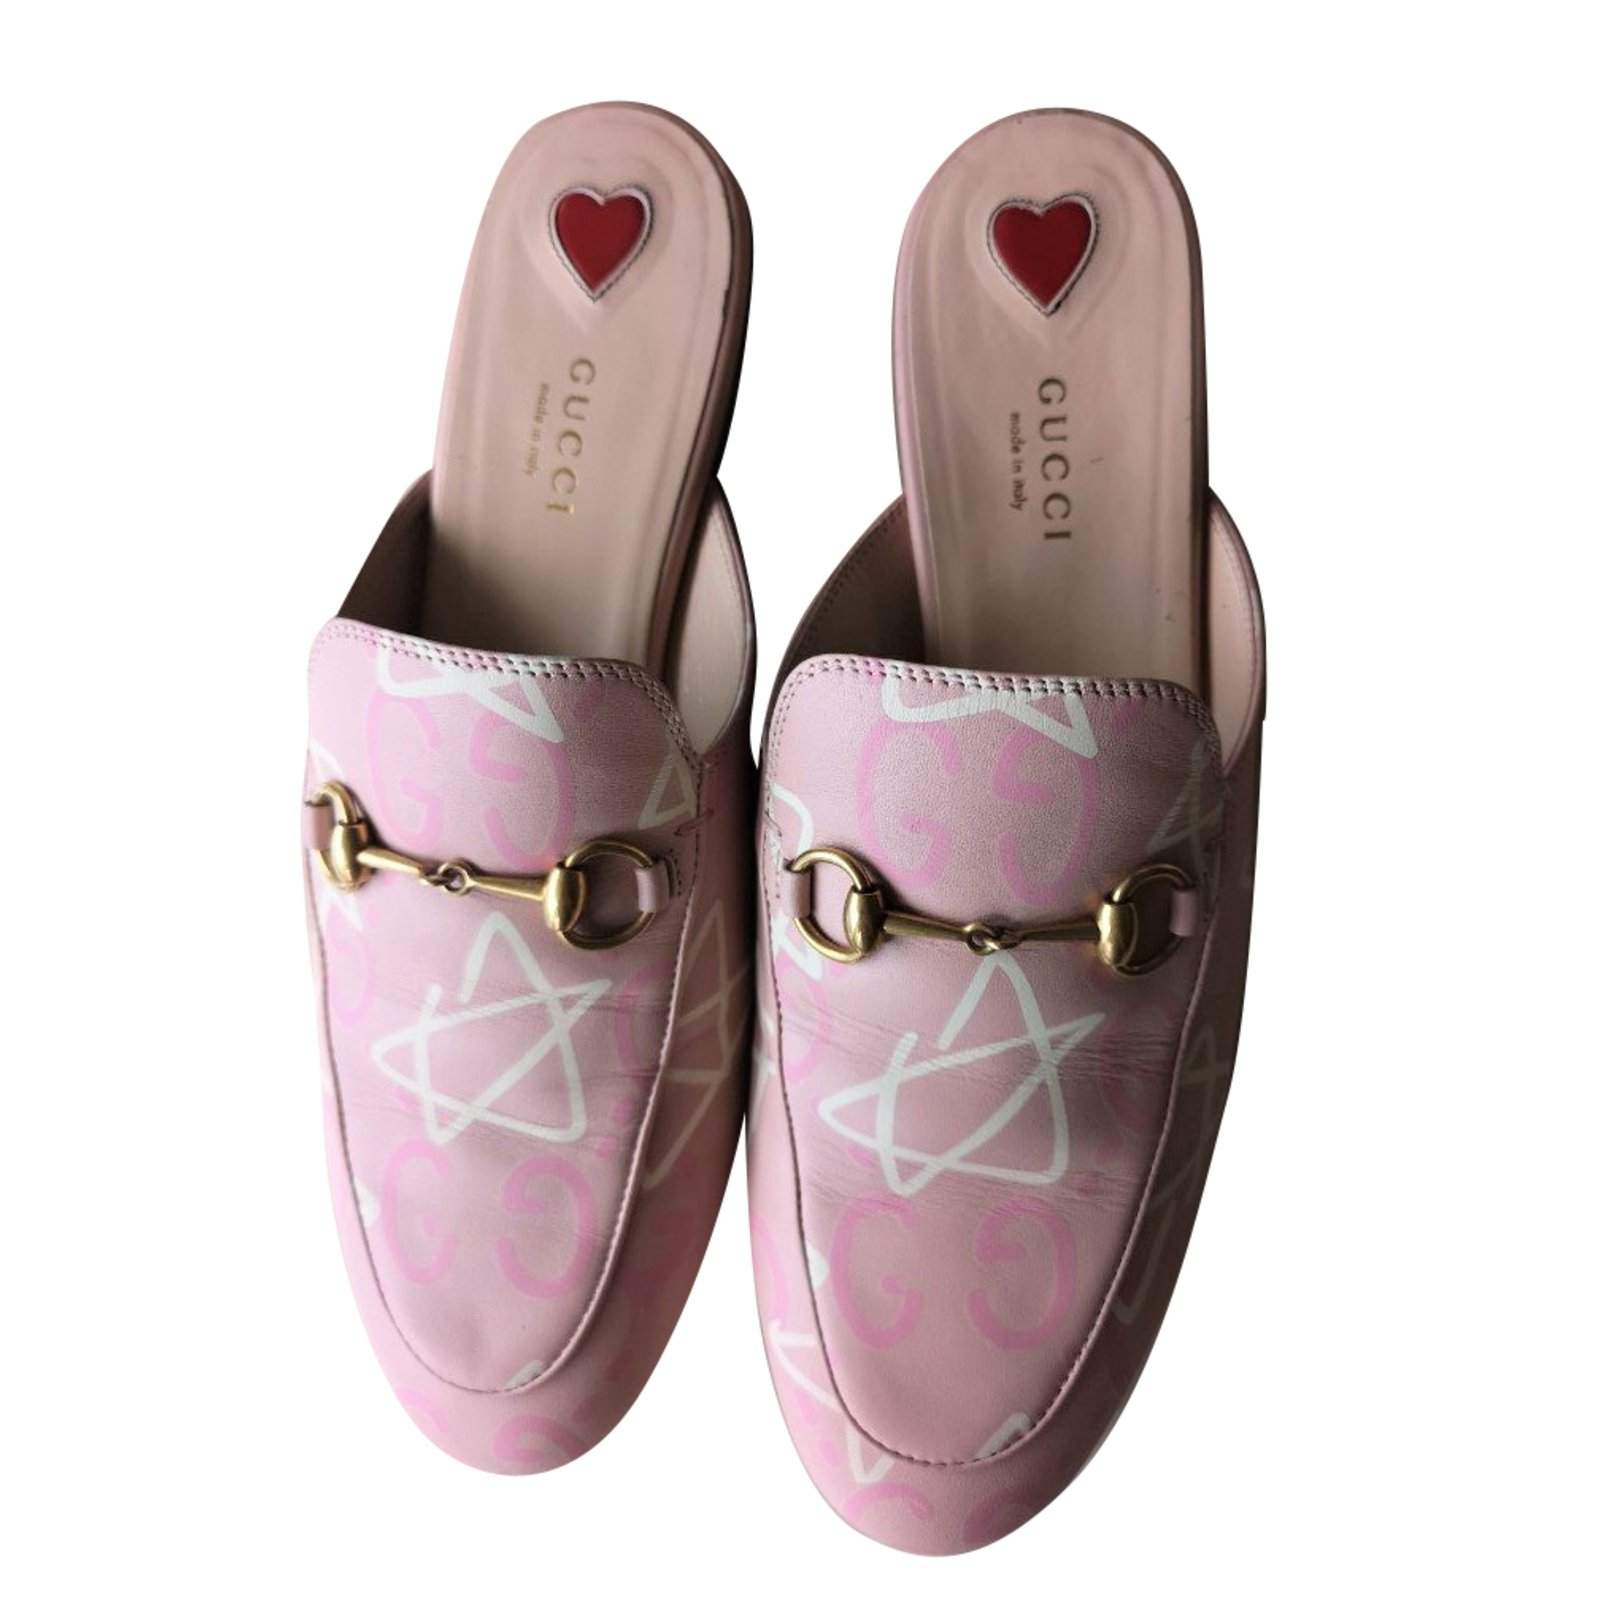 Gucci Princetown Pink Limited Japan Edition Flats Mules Leather Pink  ref.71456 f07cba412500